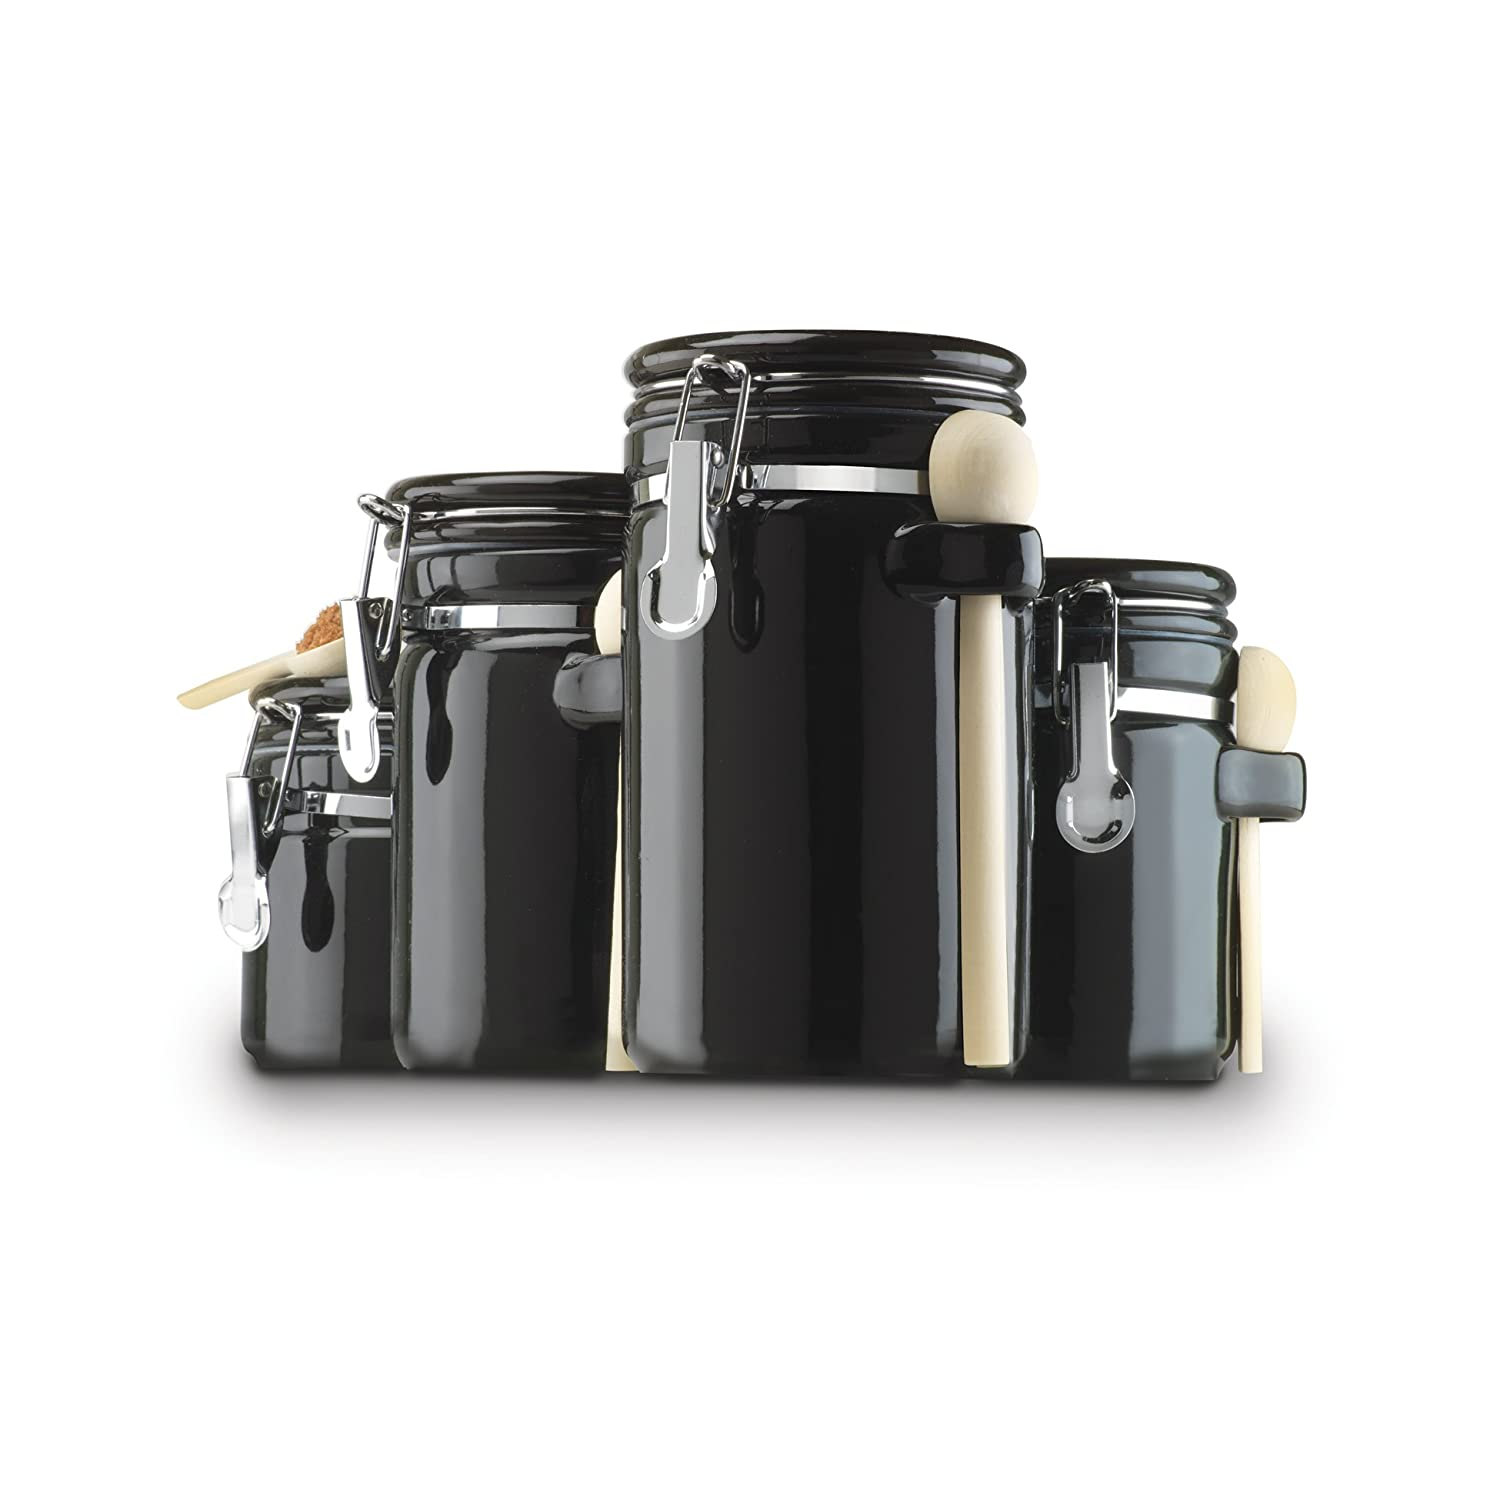 4 piece ceramic kitchen countertop canister container set for Kitchen canisters set 4